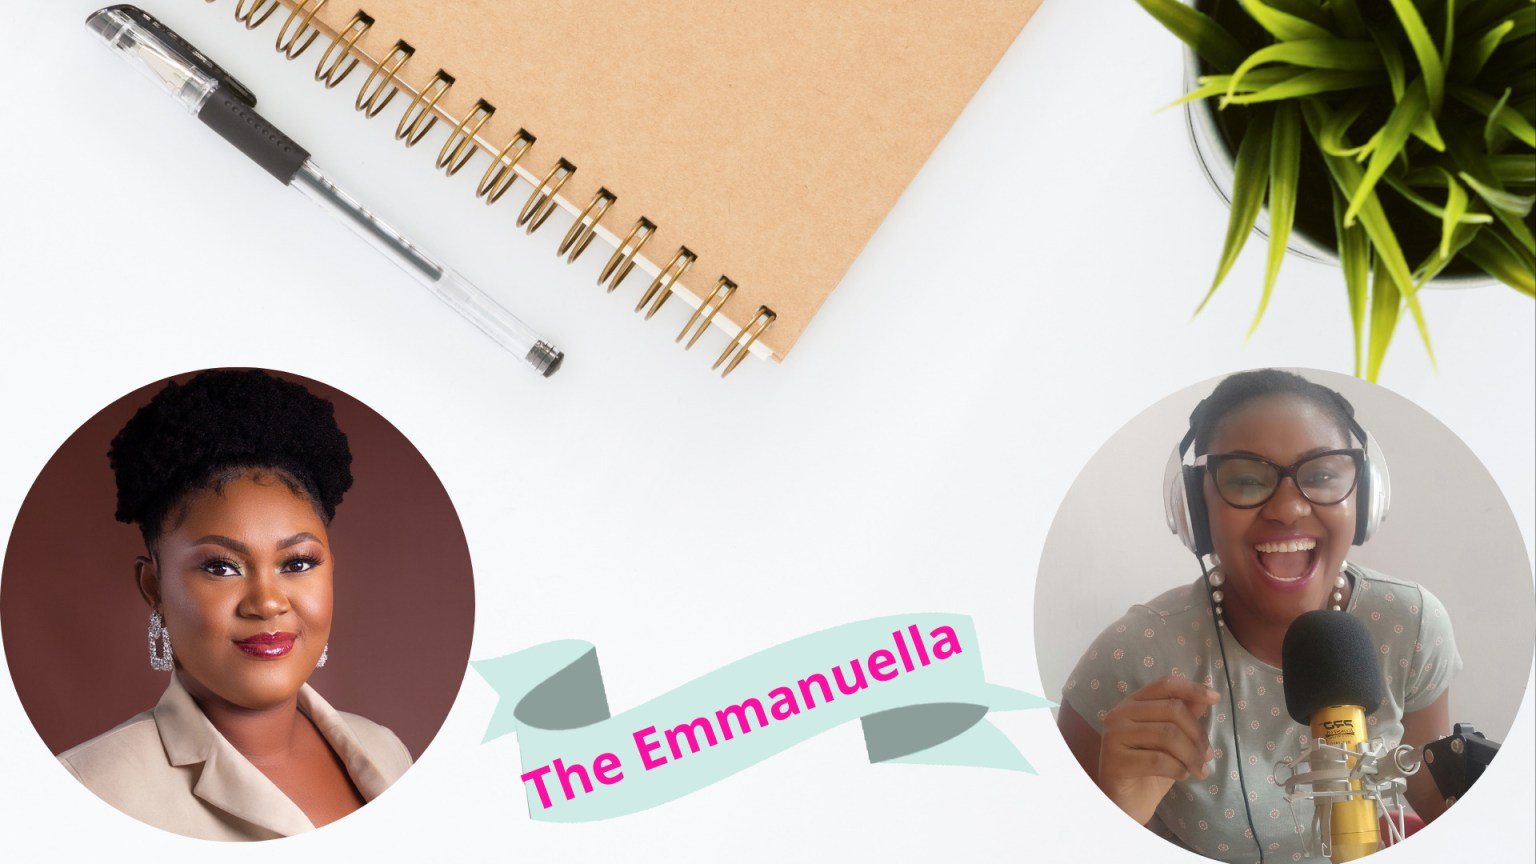 the emmanuella blog home page cover image